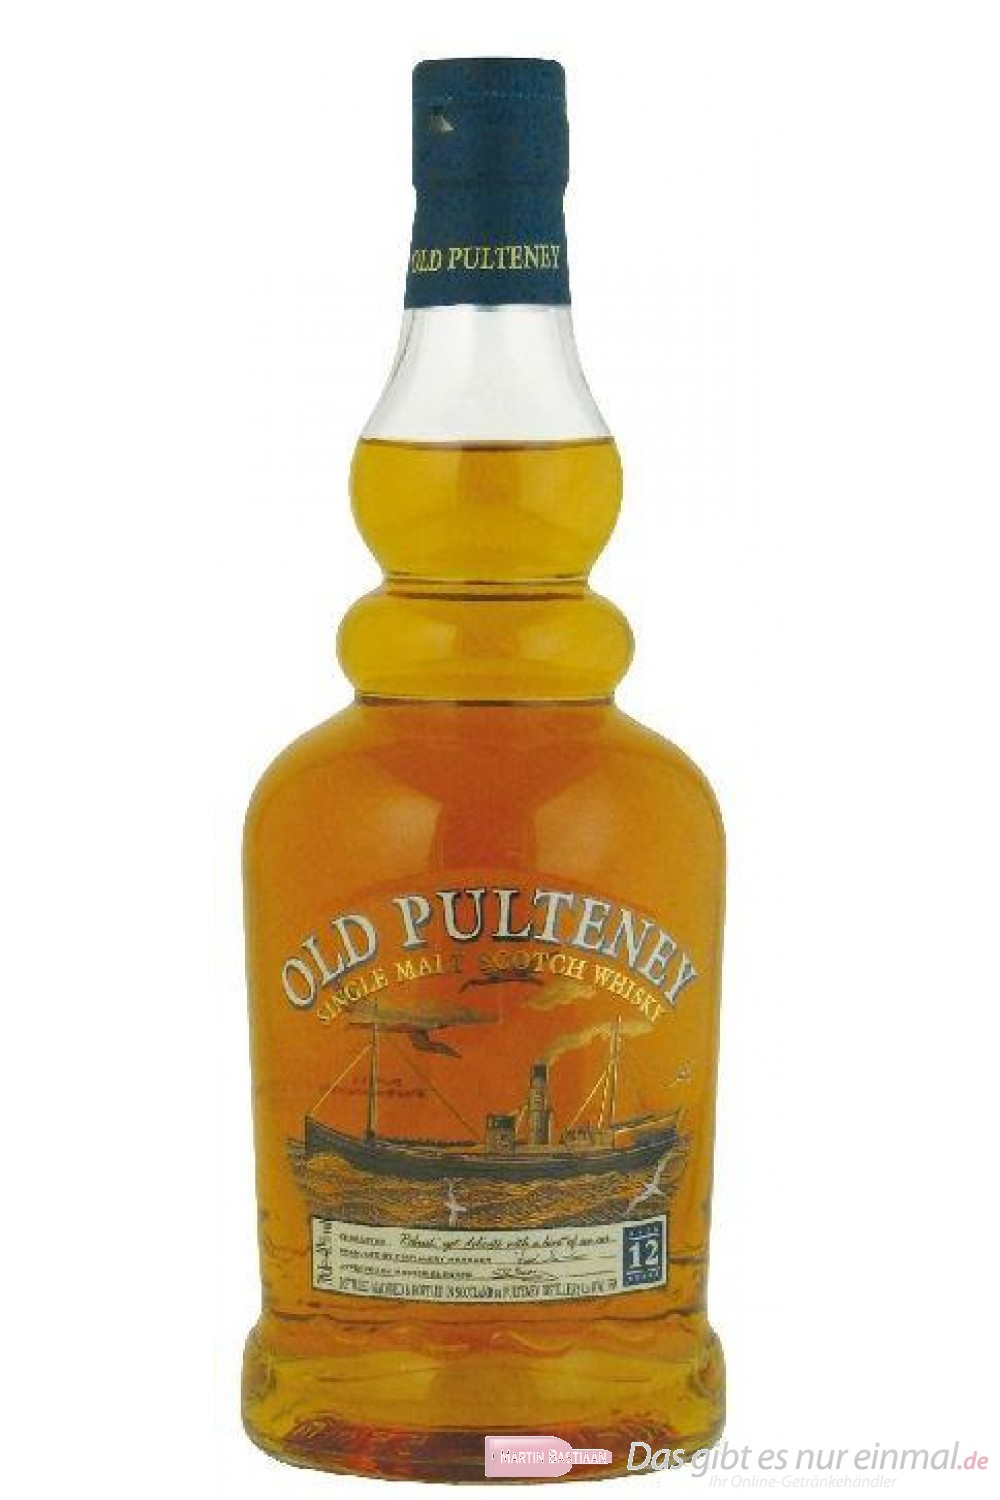 Old Pulteney 12 Years Single Malt Scotch Whisky 40% 0,7l Flasche